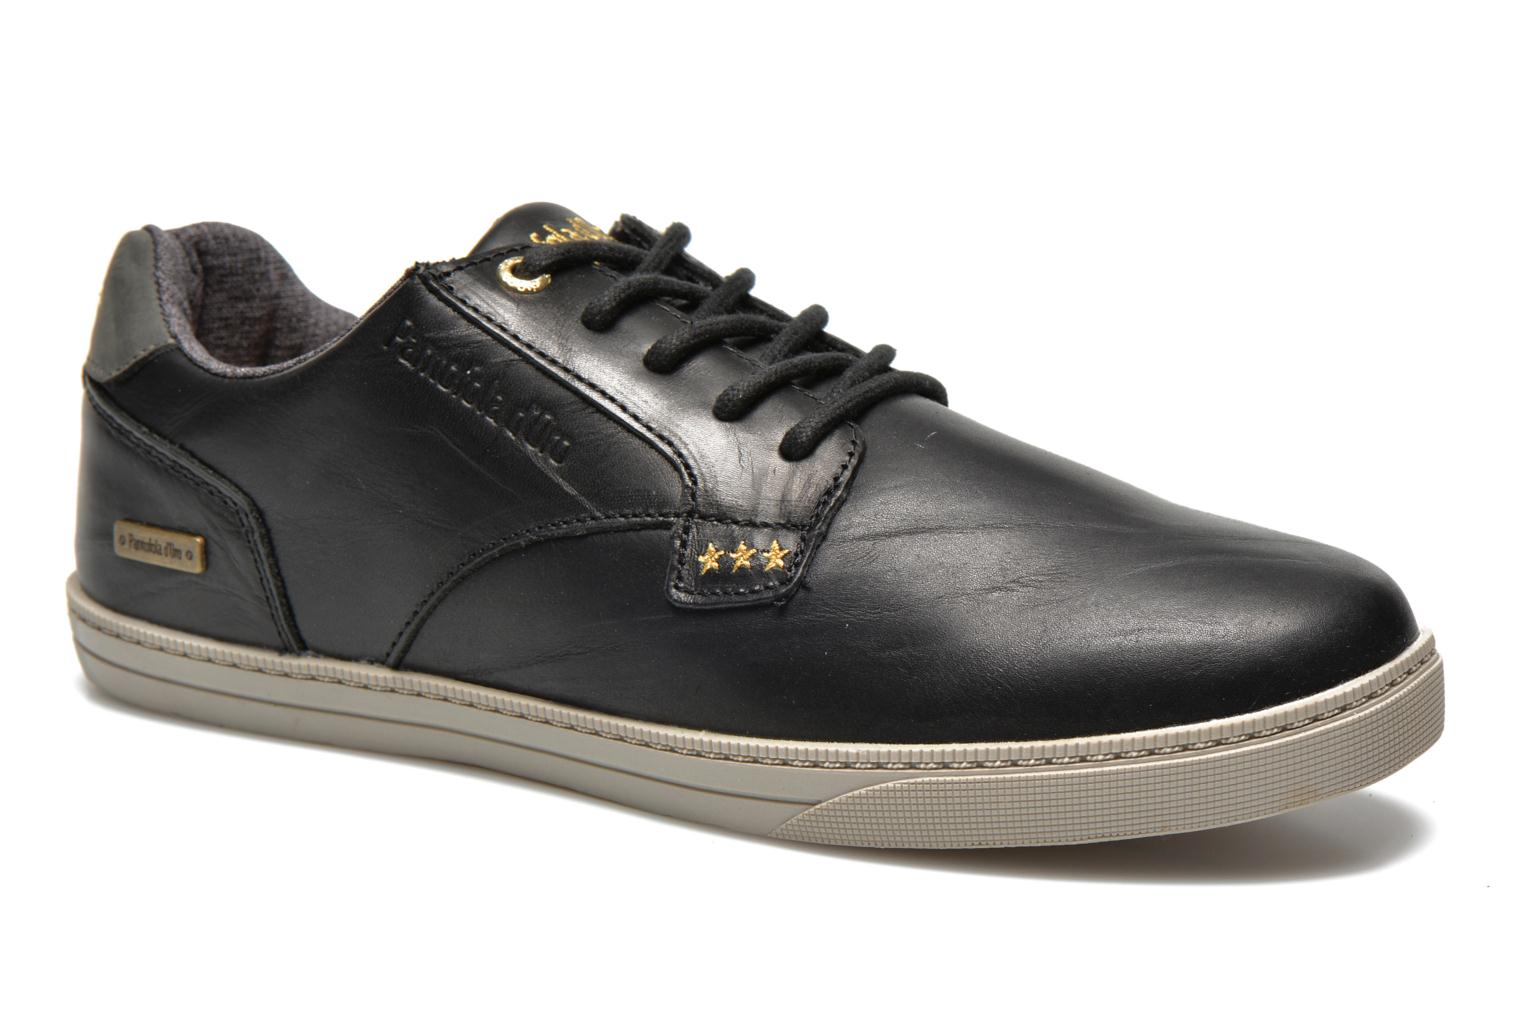 Sneakers Prato Leather Low Men by Pantofola d'Oro